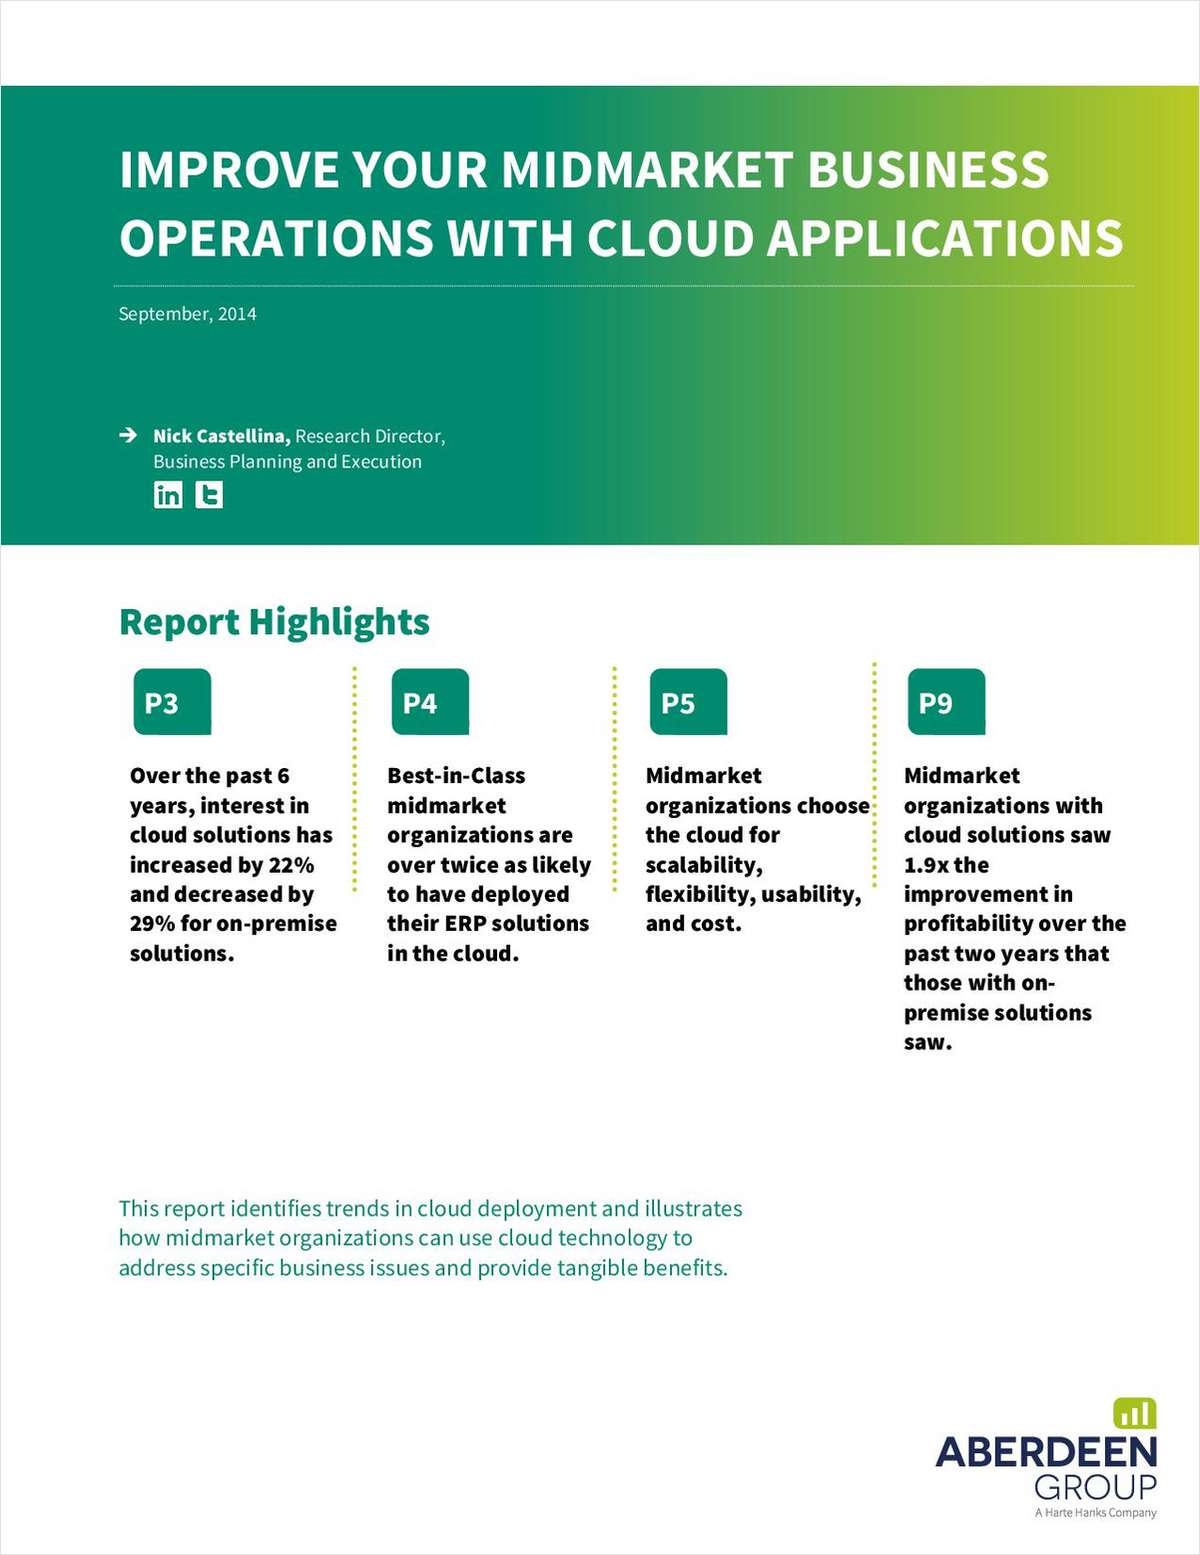 Improve Your Mid-Market Business Operations on the Cloud